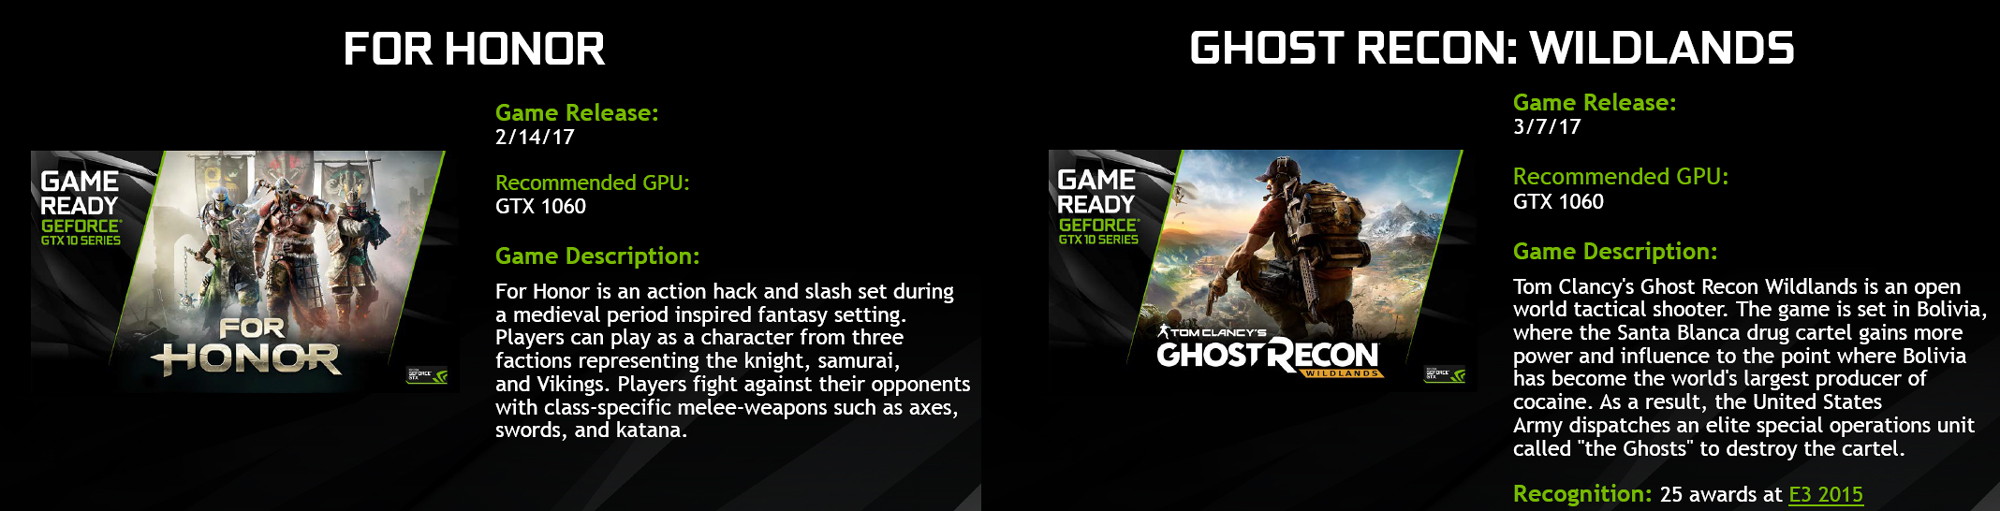 Game Bundle: For Honor or Ghost Recon for FREE with New ROG